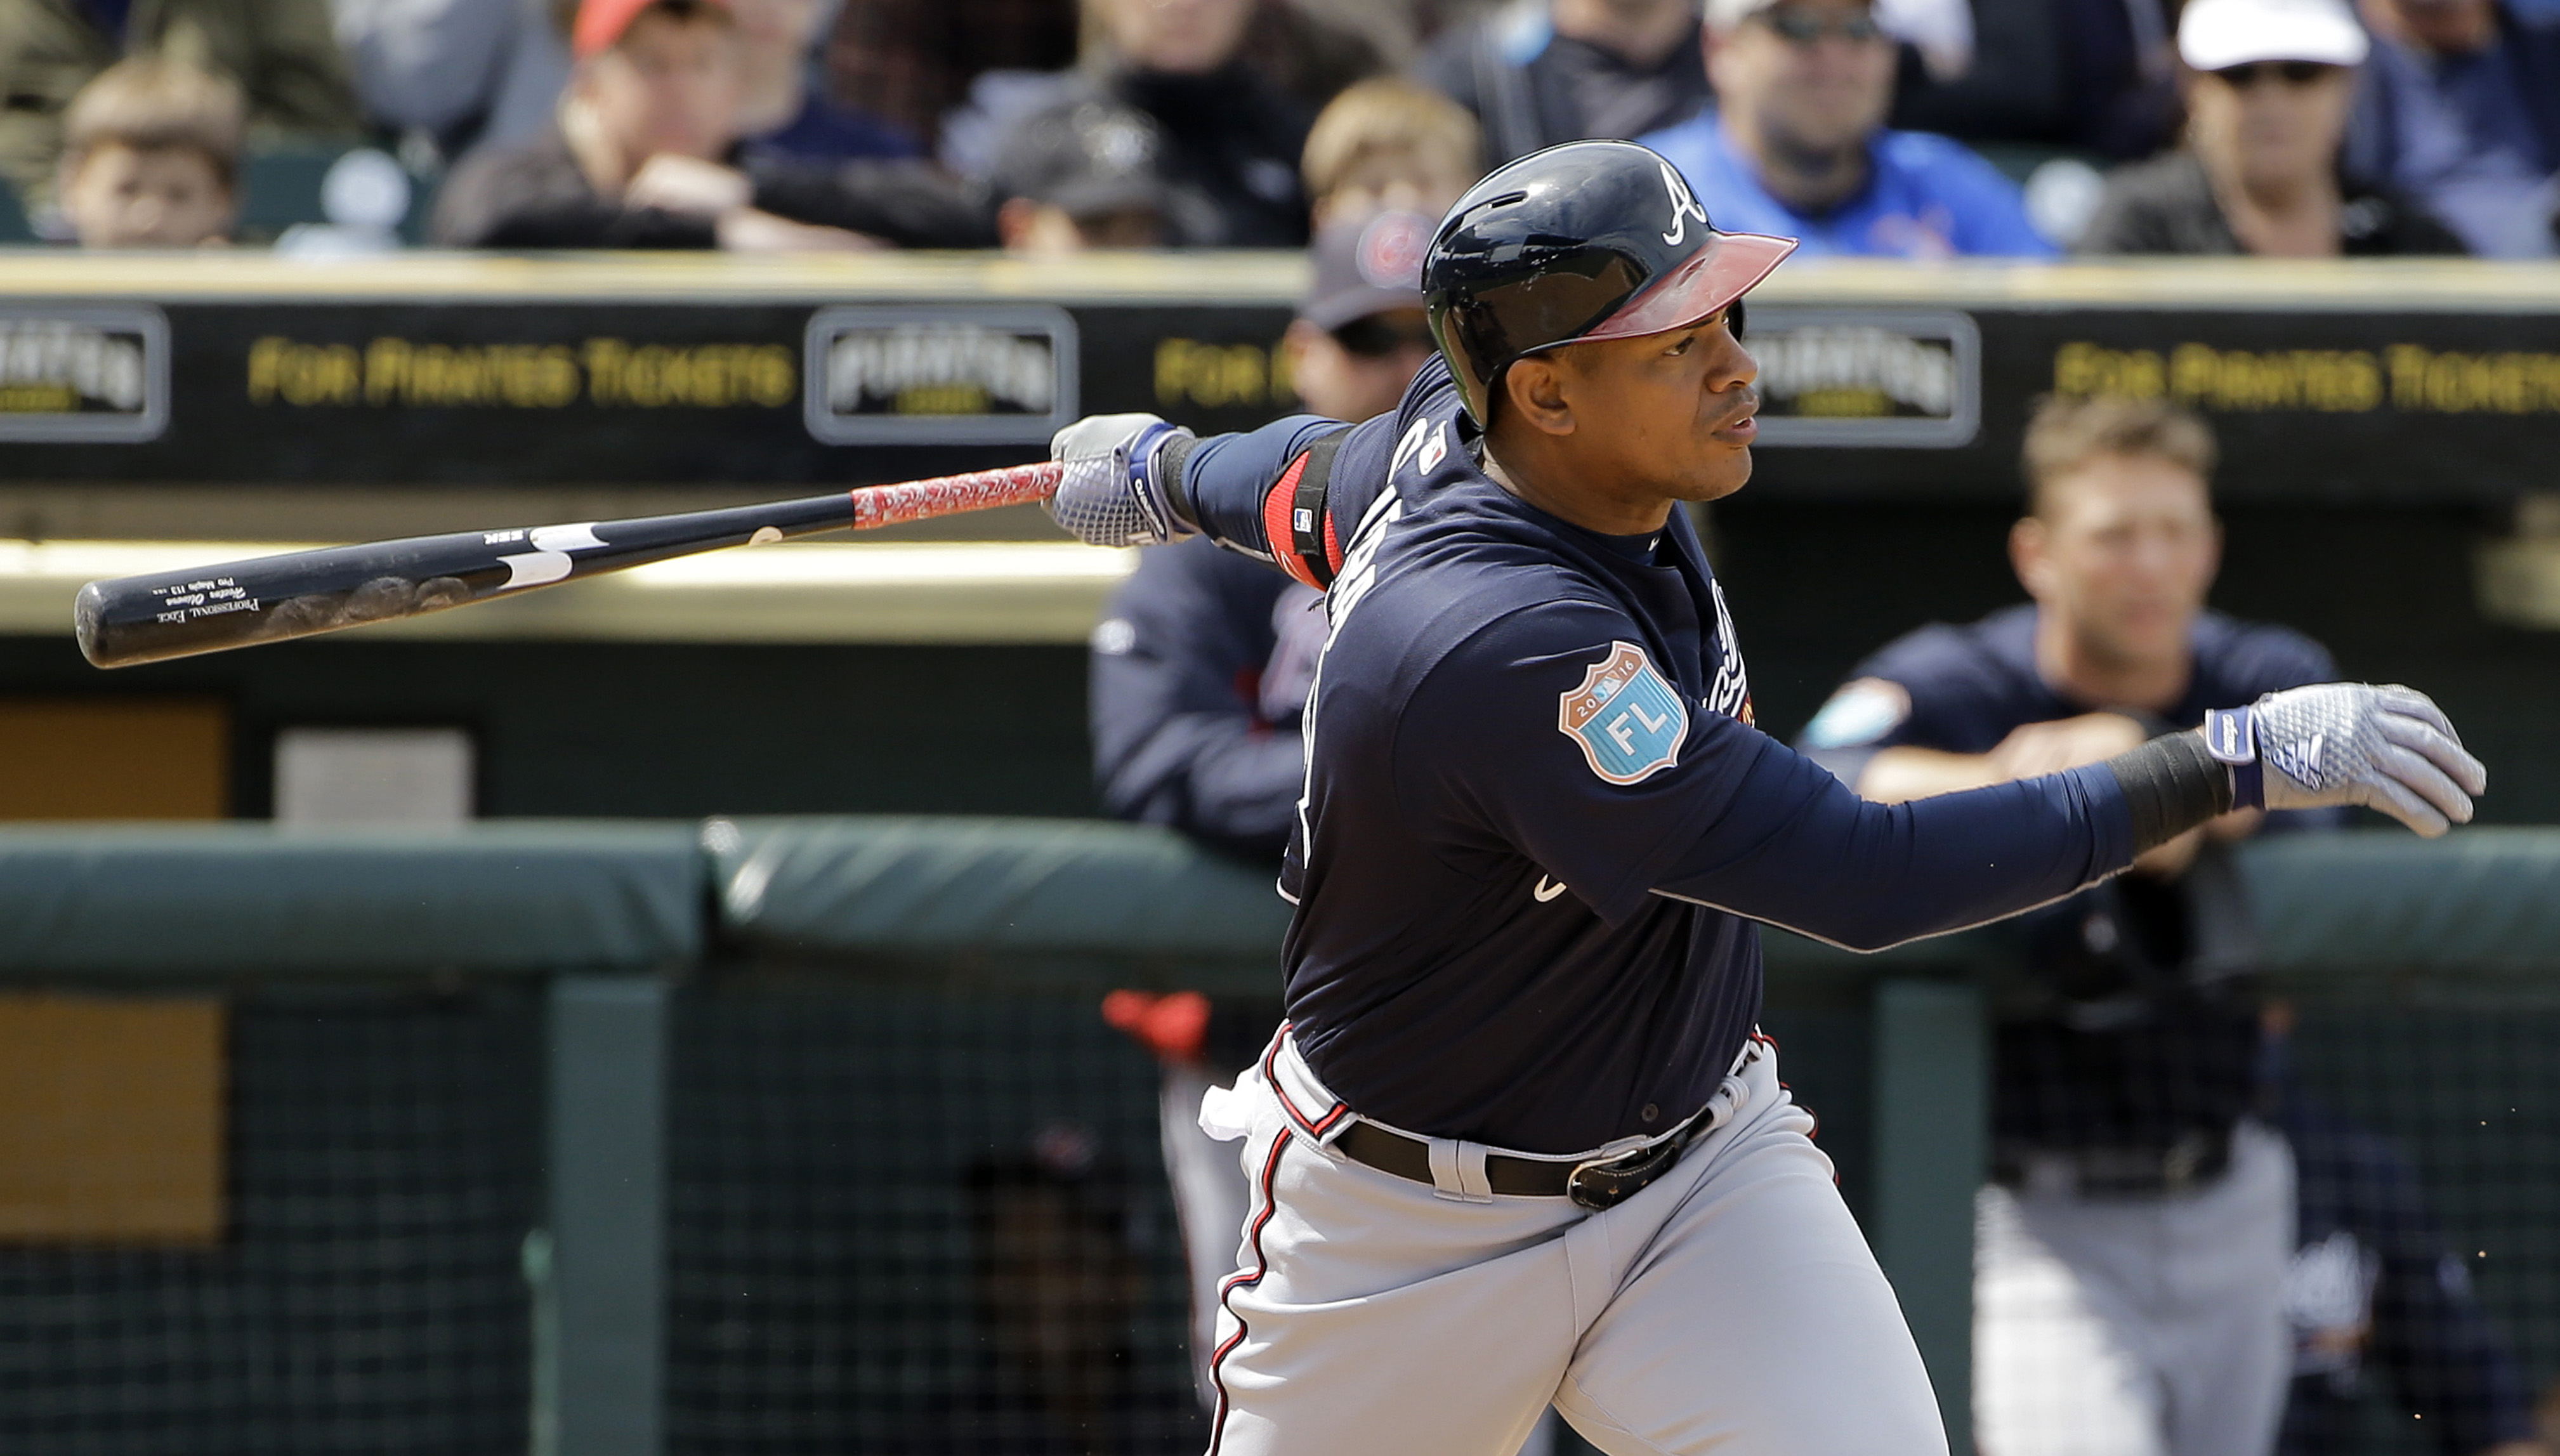 Atlanta Braves' Hector Olivera bats against the Pittsburgh Pirates during the sixth inning of a spring training baseball game Monday, March 21, 2016, in Bradenton, Fla. (AP Photo/Chris O'Meara)